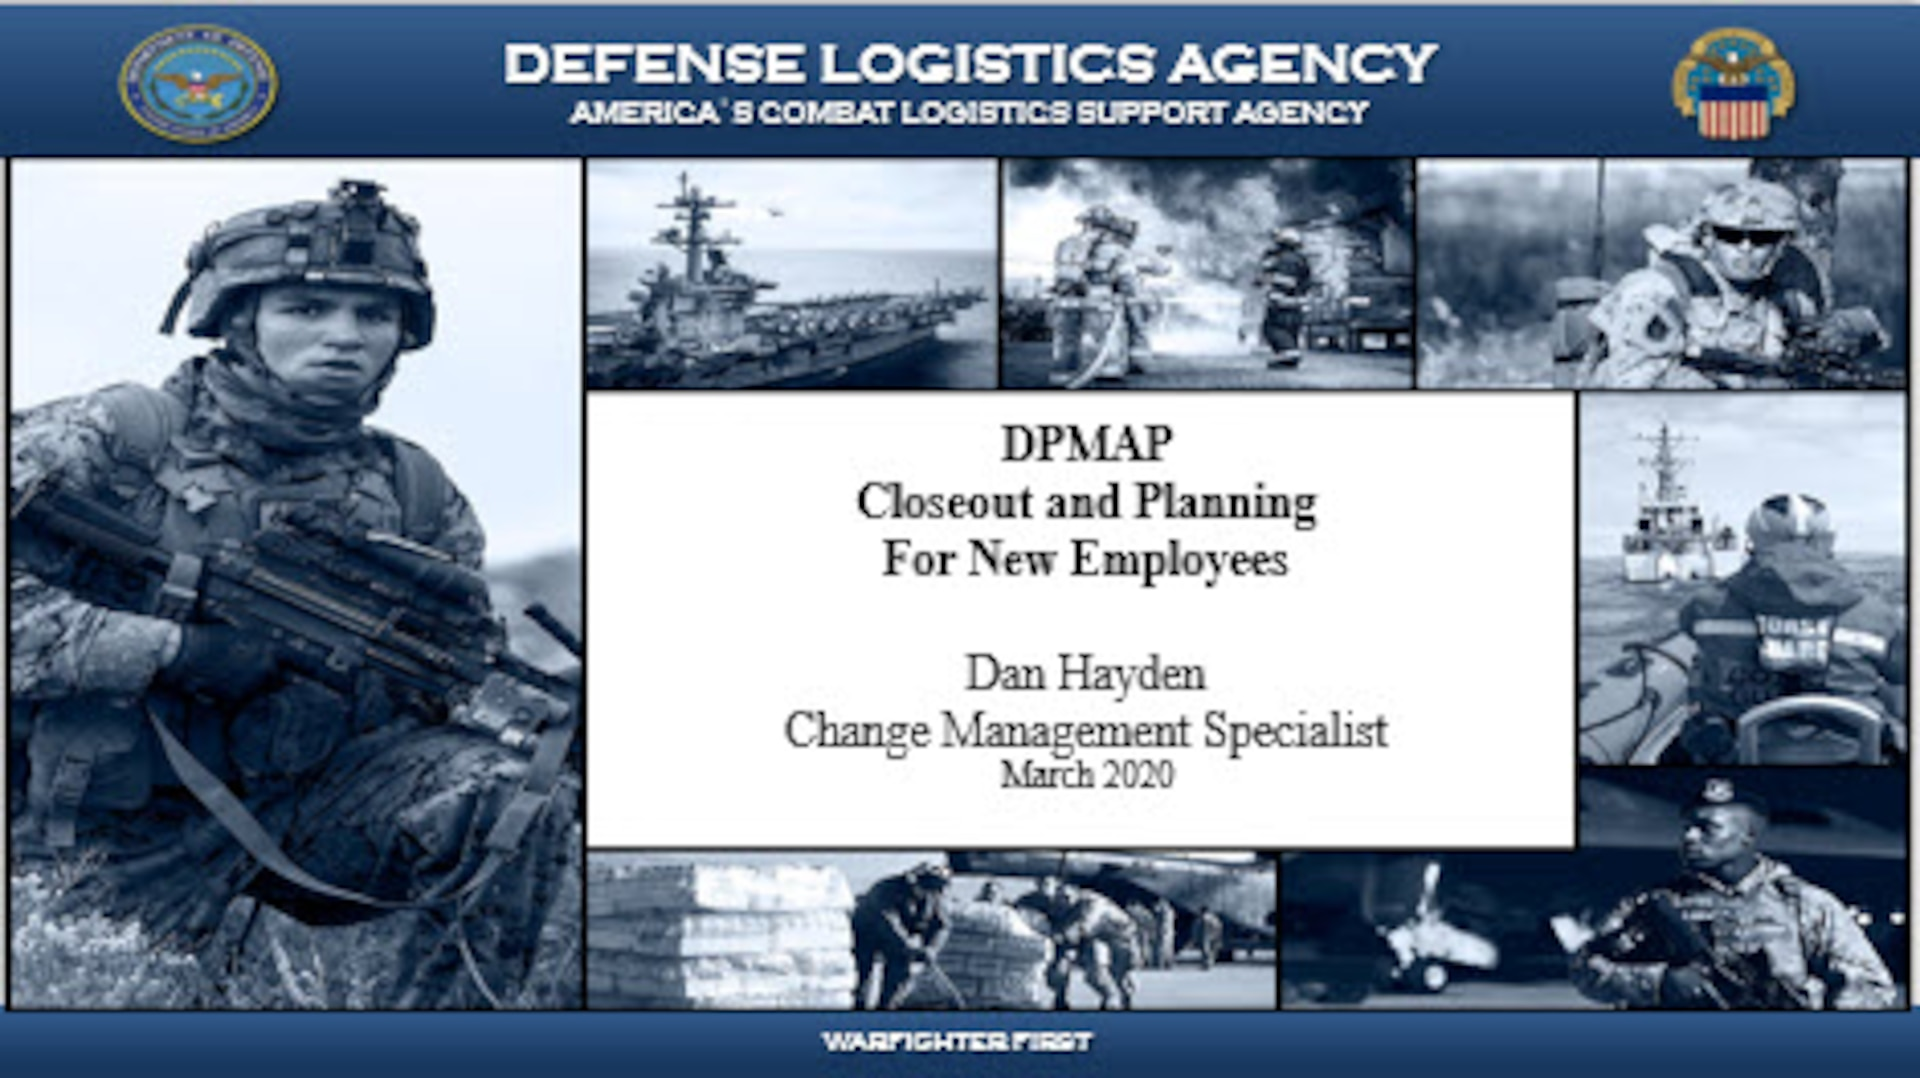 DPMAP Closeout and Planning For New Employees Cover Sheet for virtual presentation on March 18, 2020